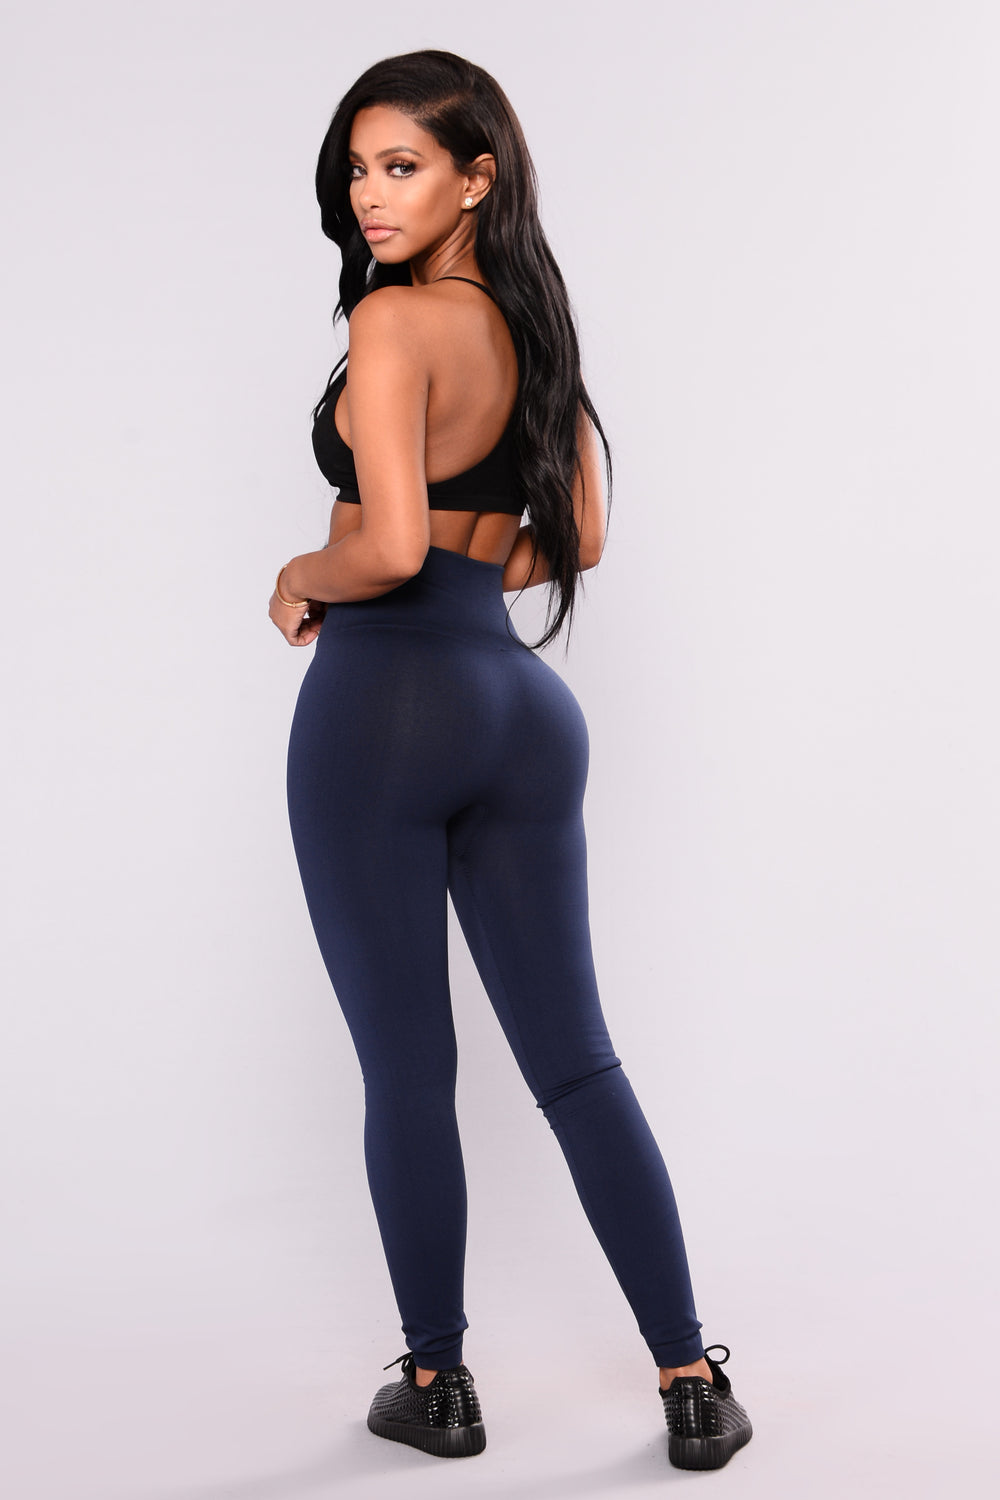 Sammi Fleece Lined Leggings - Navy